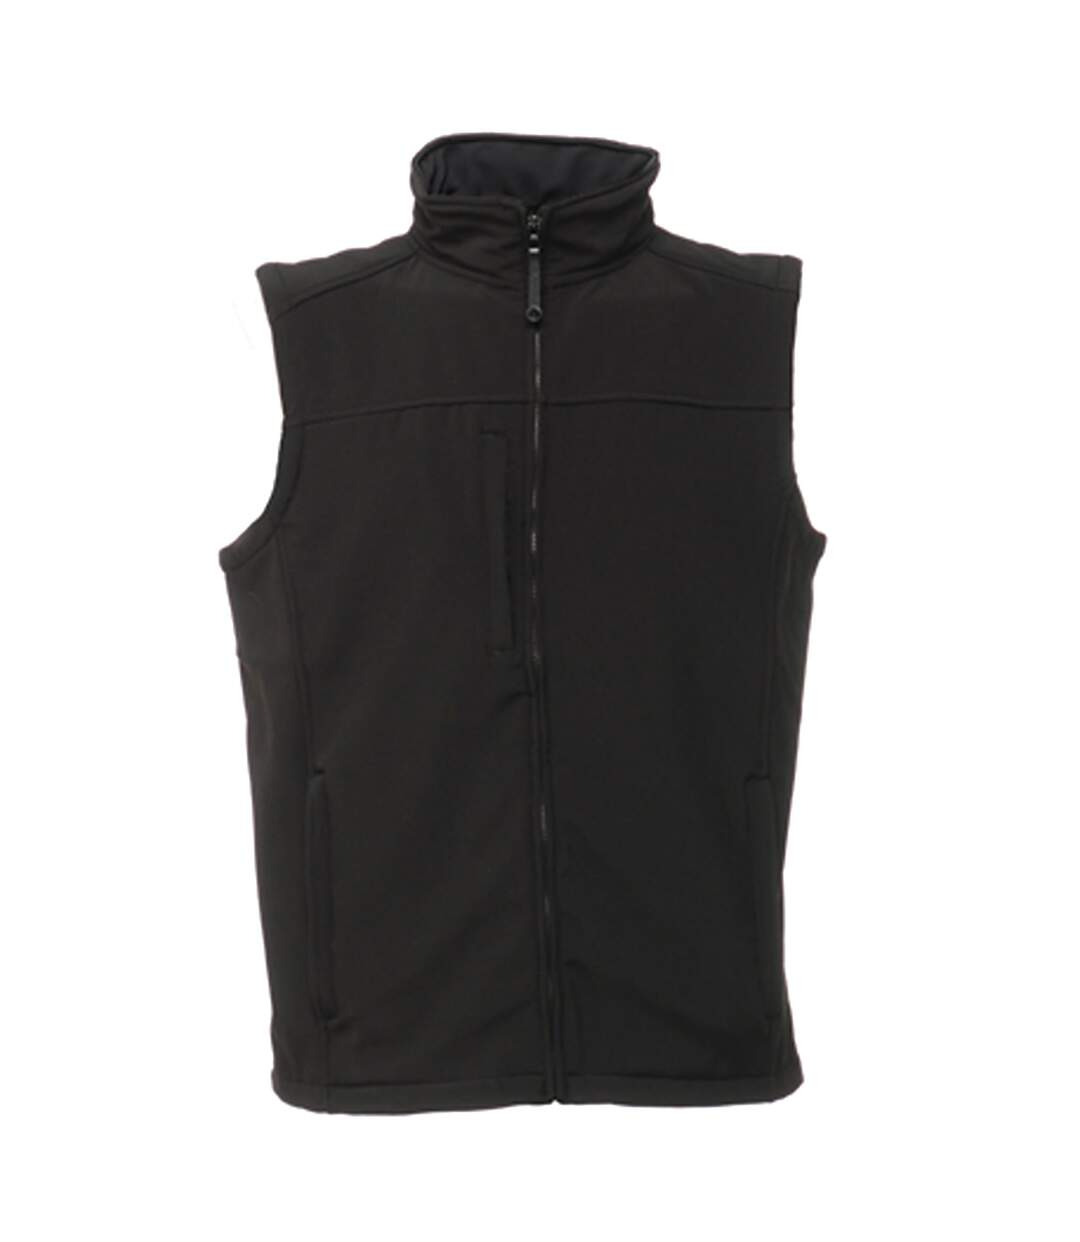 Regatta Mens Flux Softshell Bodywarmer / Sleeveless Jacket Water Repellent And Wind Resistant (All Black) - UTRG1493